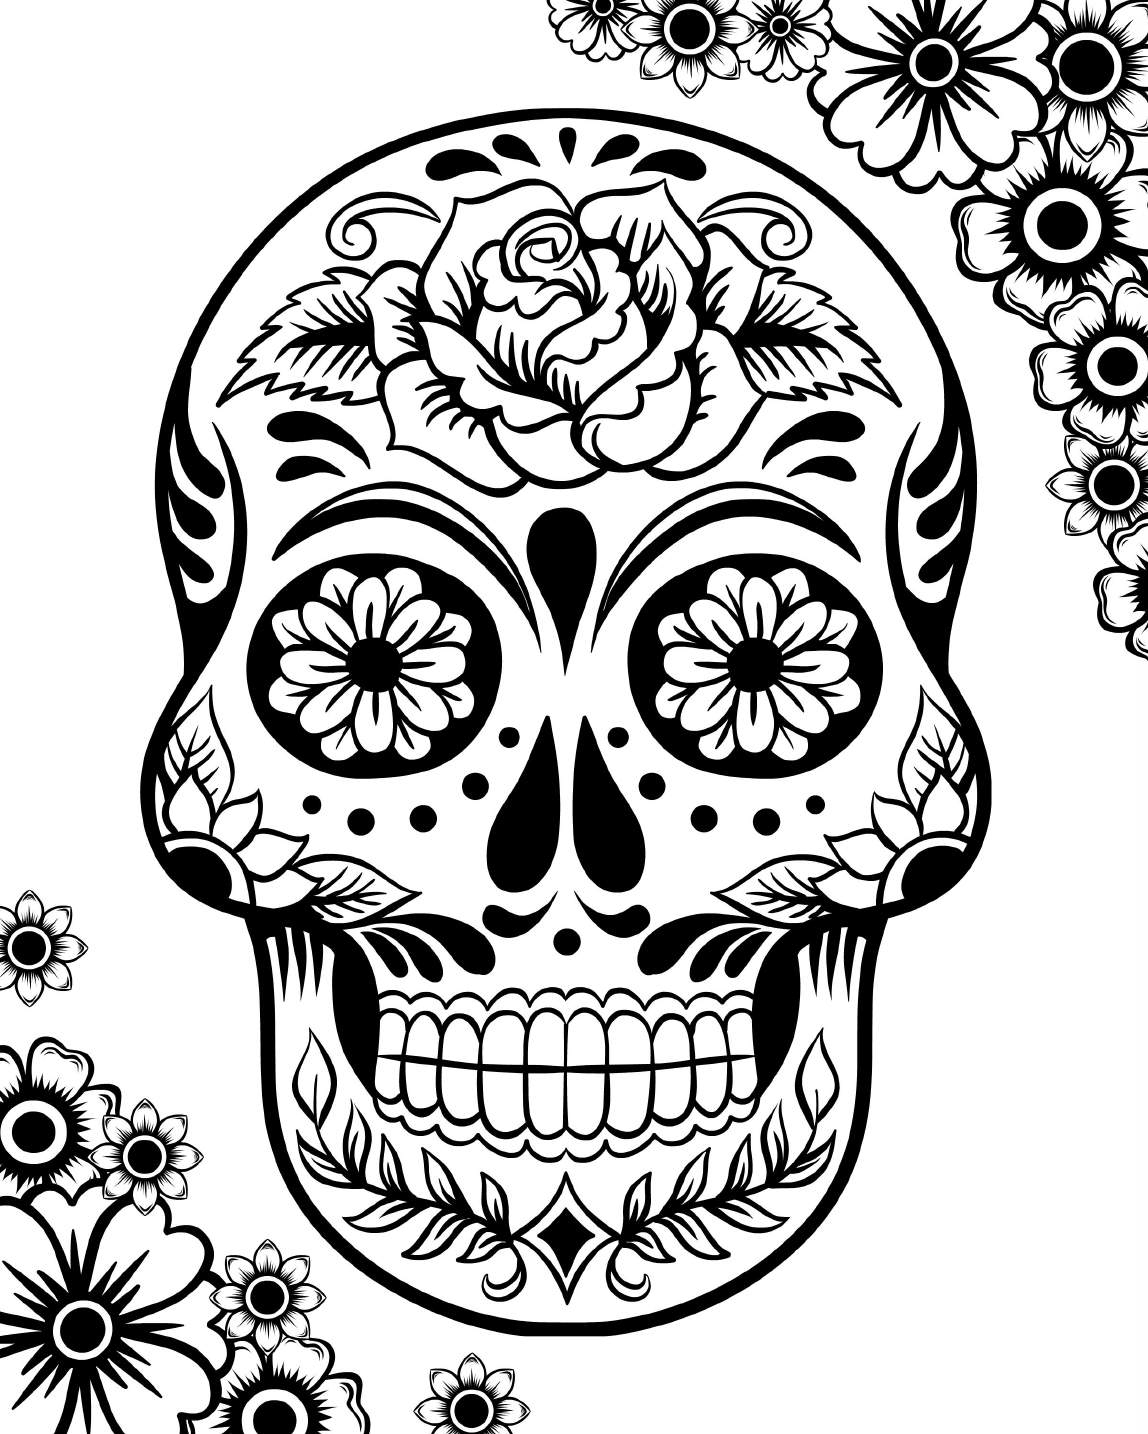 day of the dead skulls coloring pages sugar skull coloring pages coloring home pages day coloring the dead of skulls